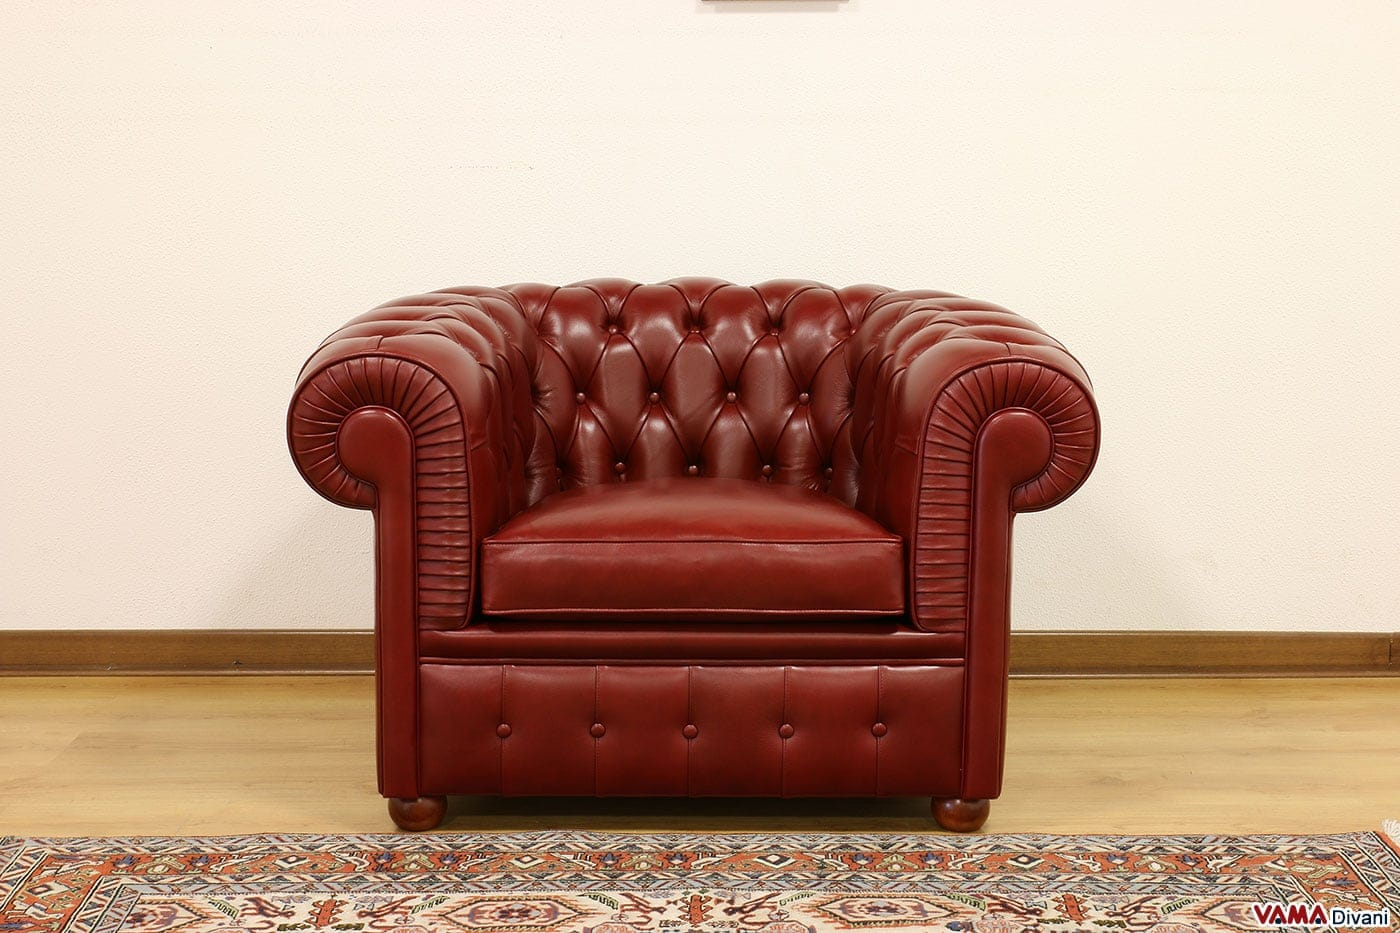 Poltrona Chesterfield rossa in cuoietto